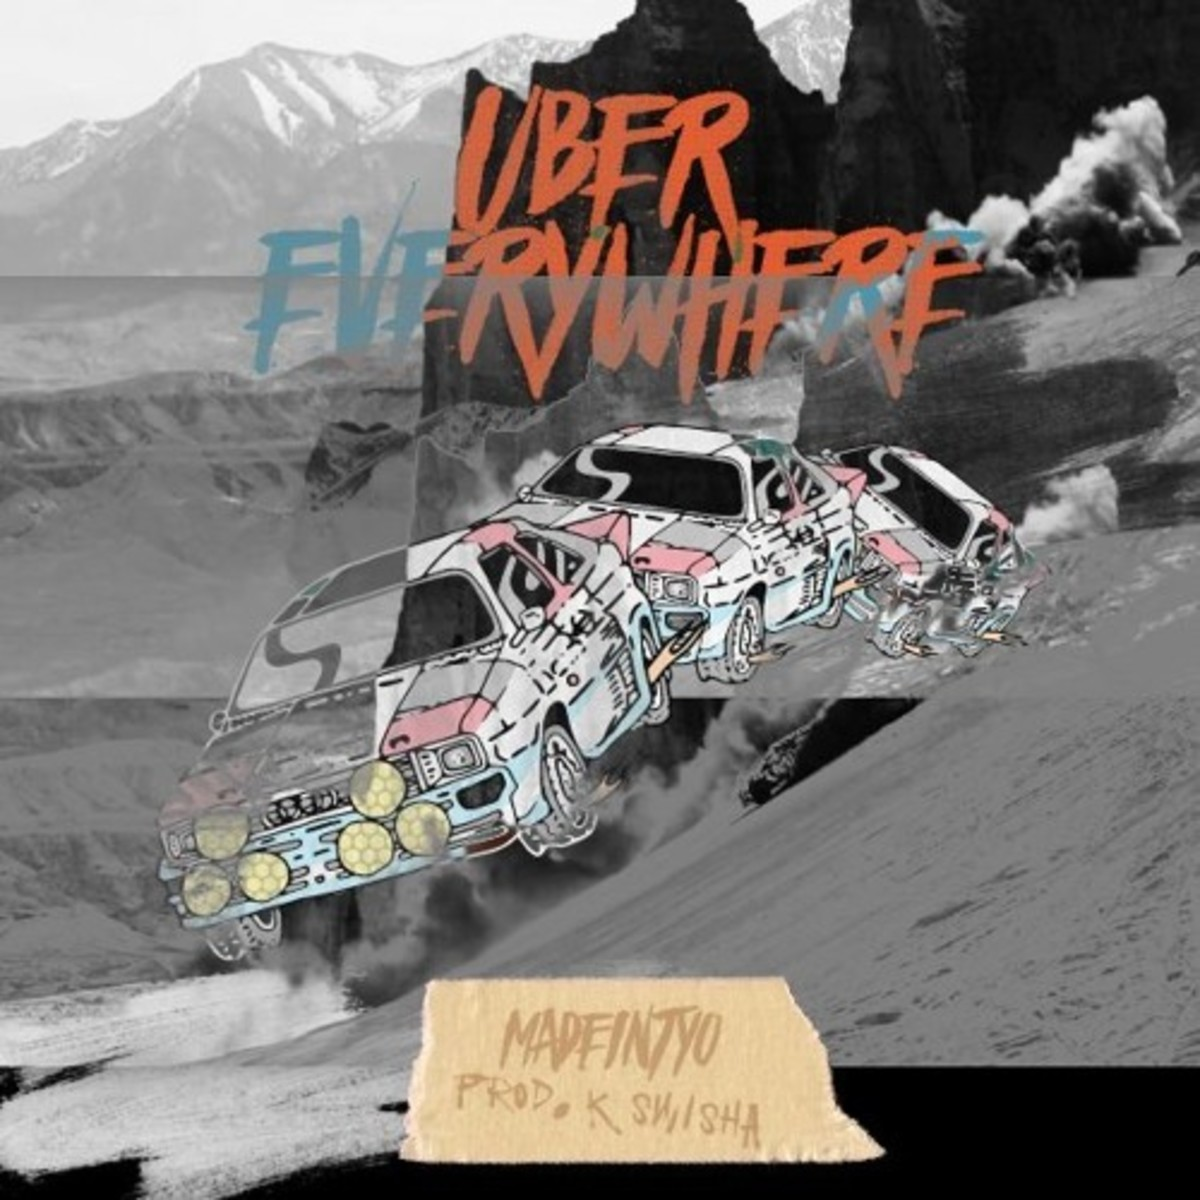 madeintyo-uber-everywhere.jpg